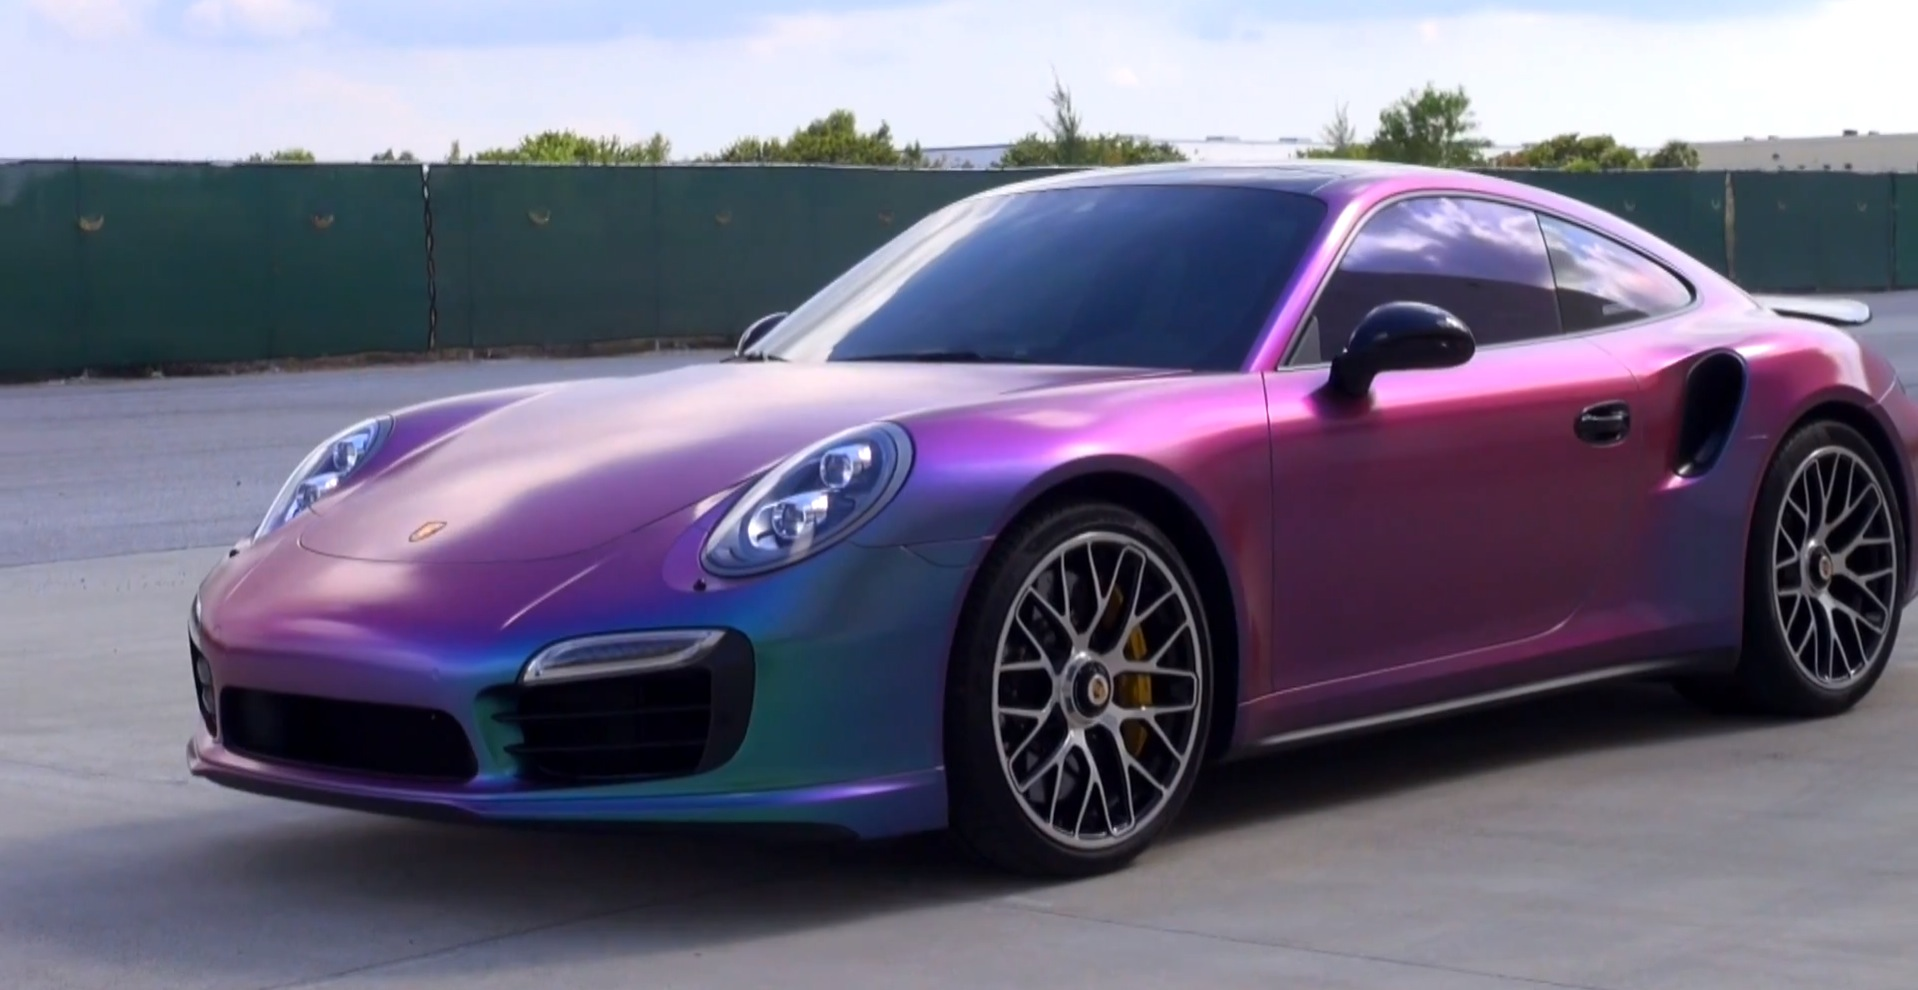 new-porsche-911-turbo-s-gets-sprayed-in-chameleon-plasti-dip-video-88725_1